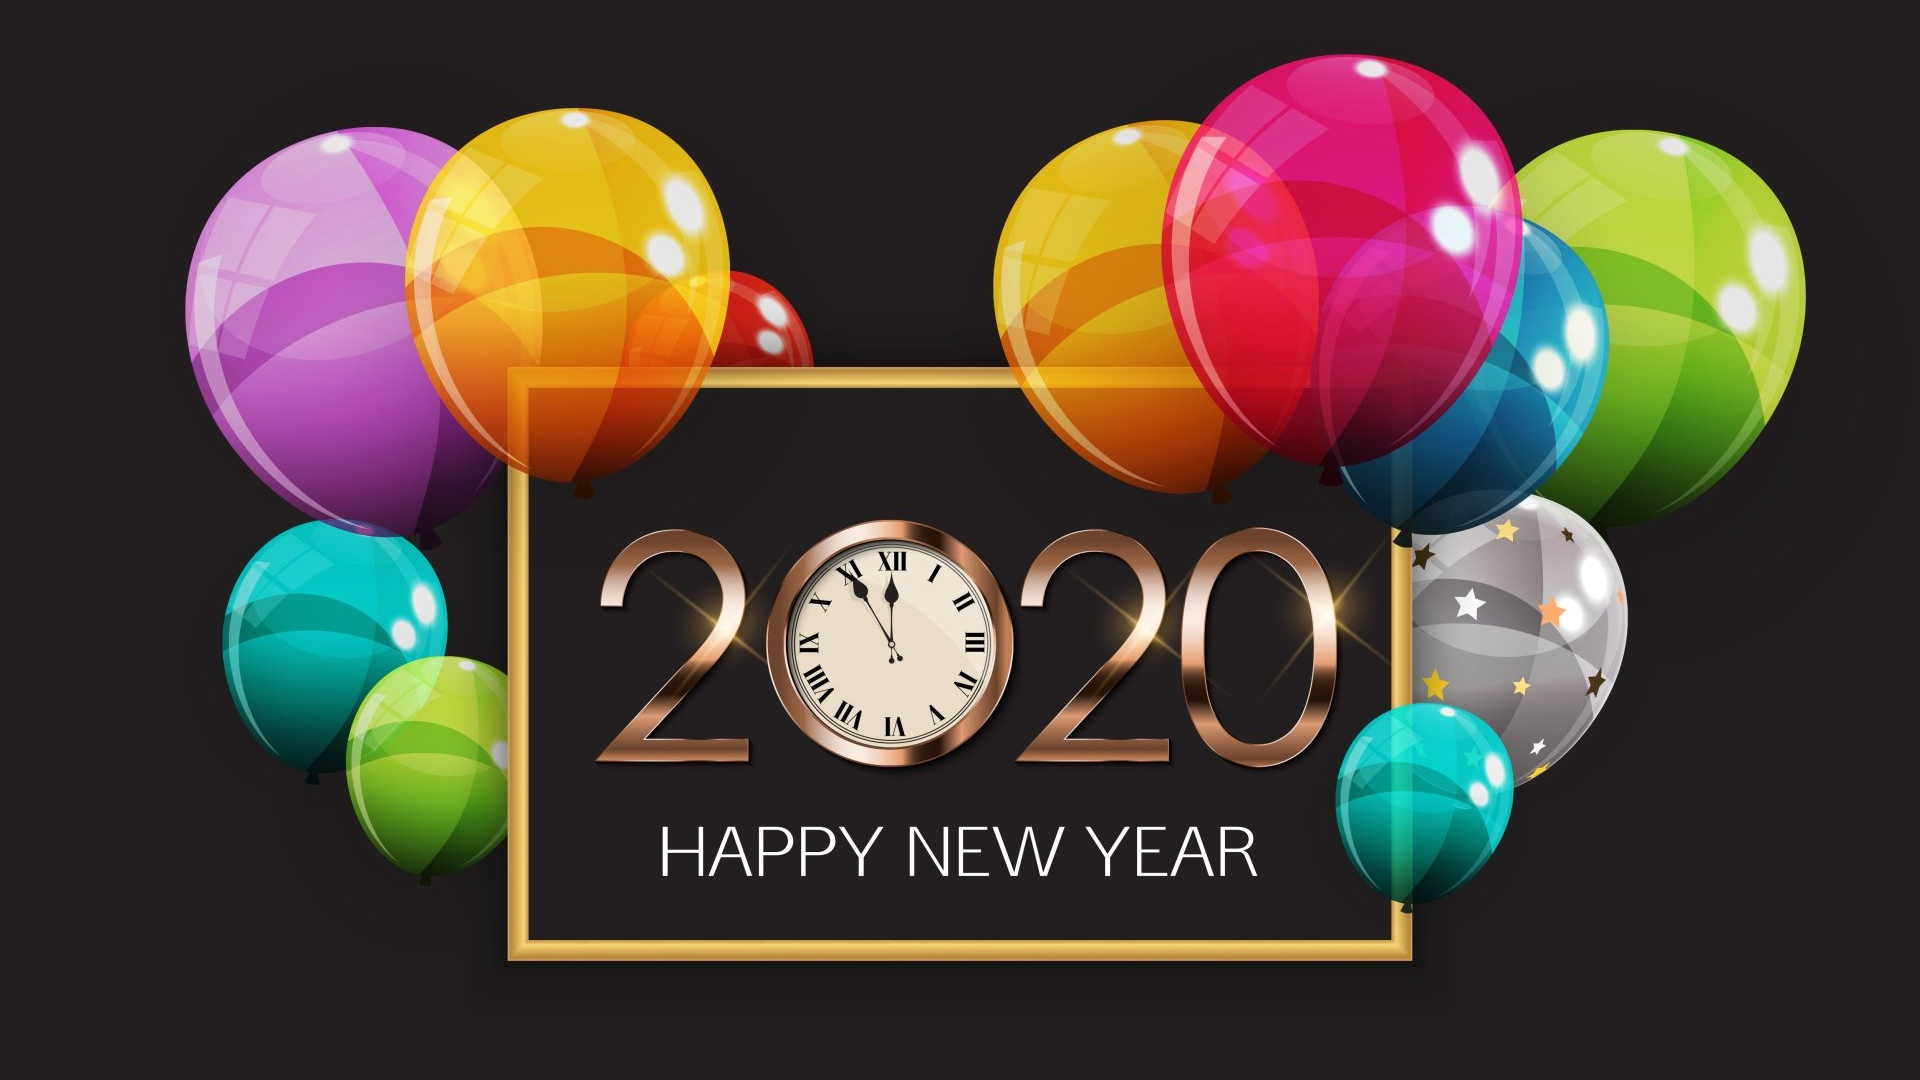 2020 Happy New Year Images HD Wallpapers